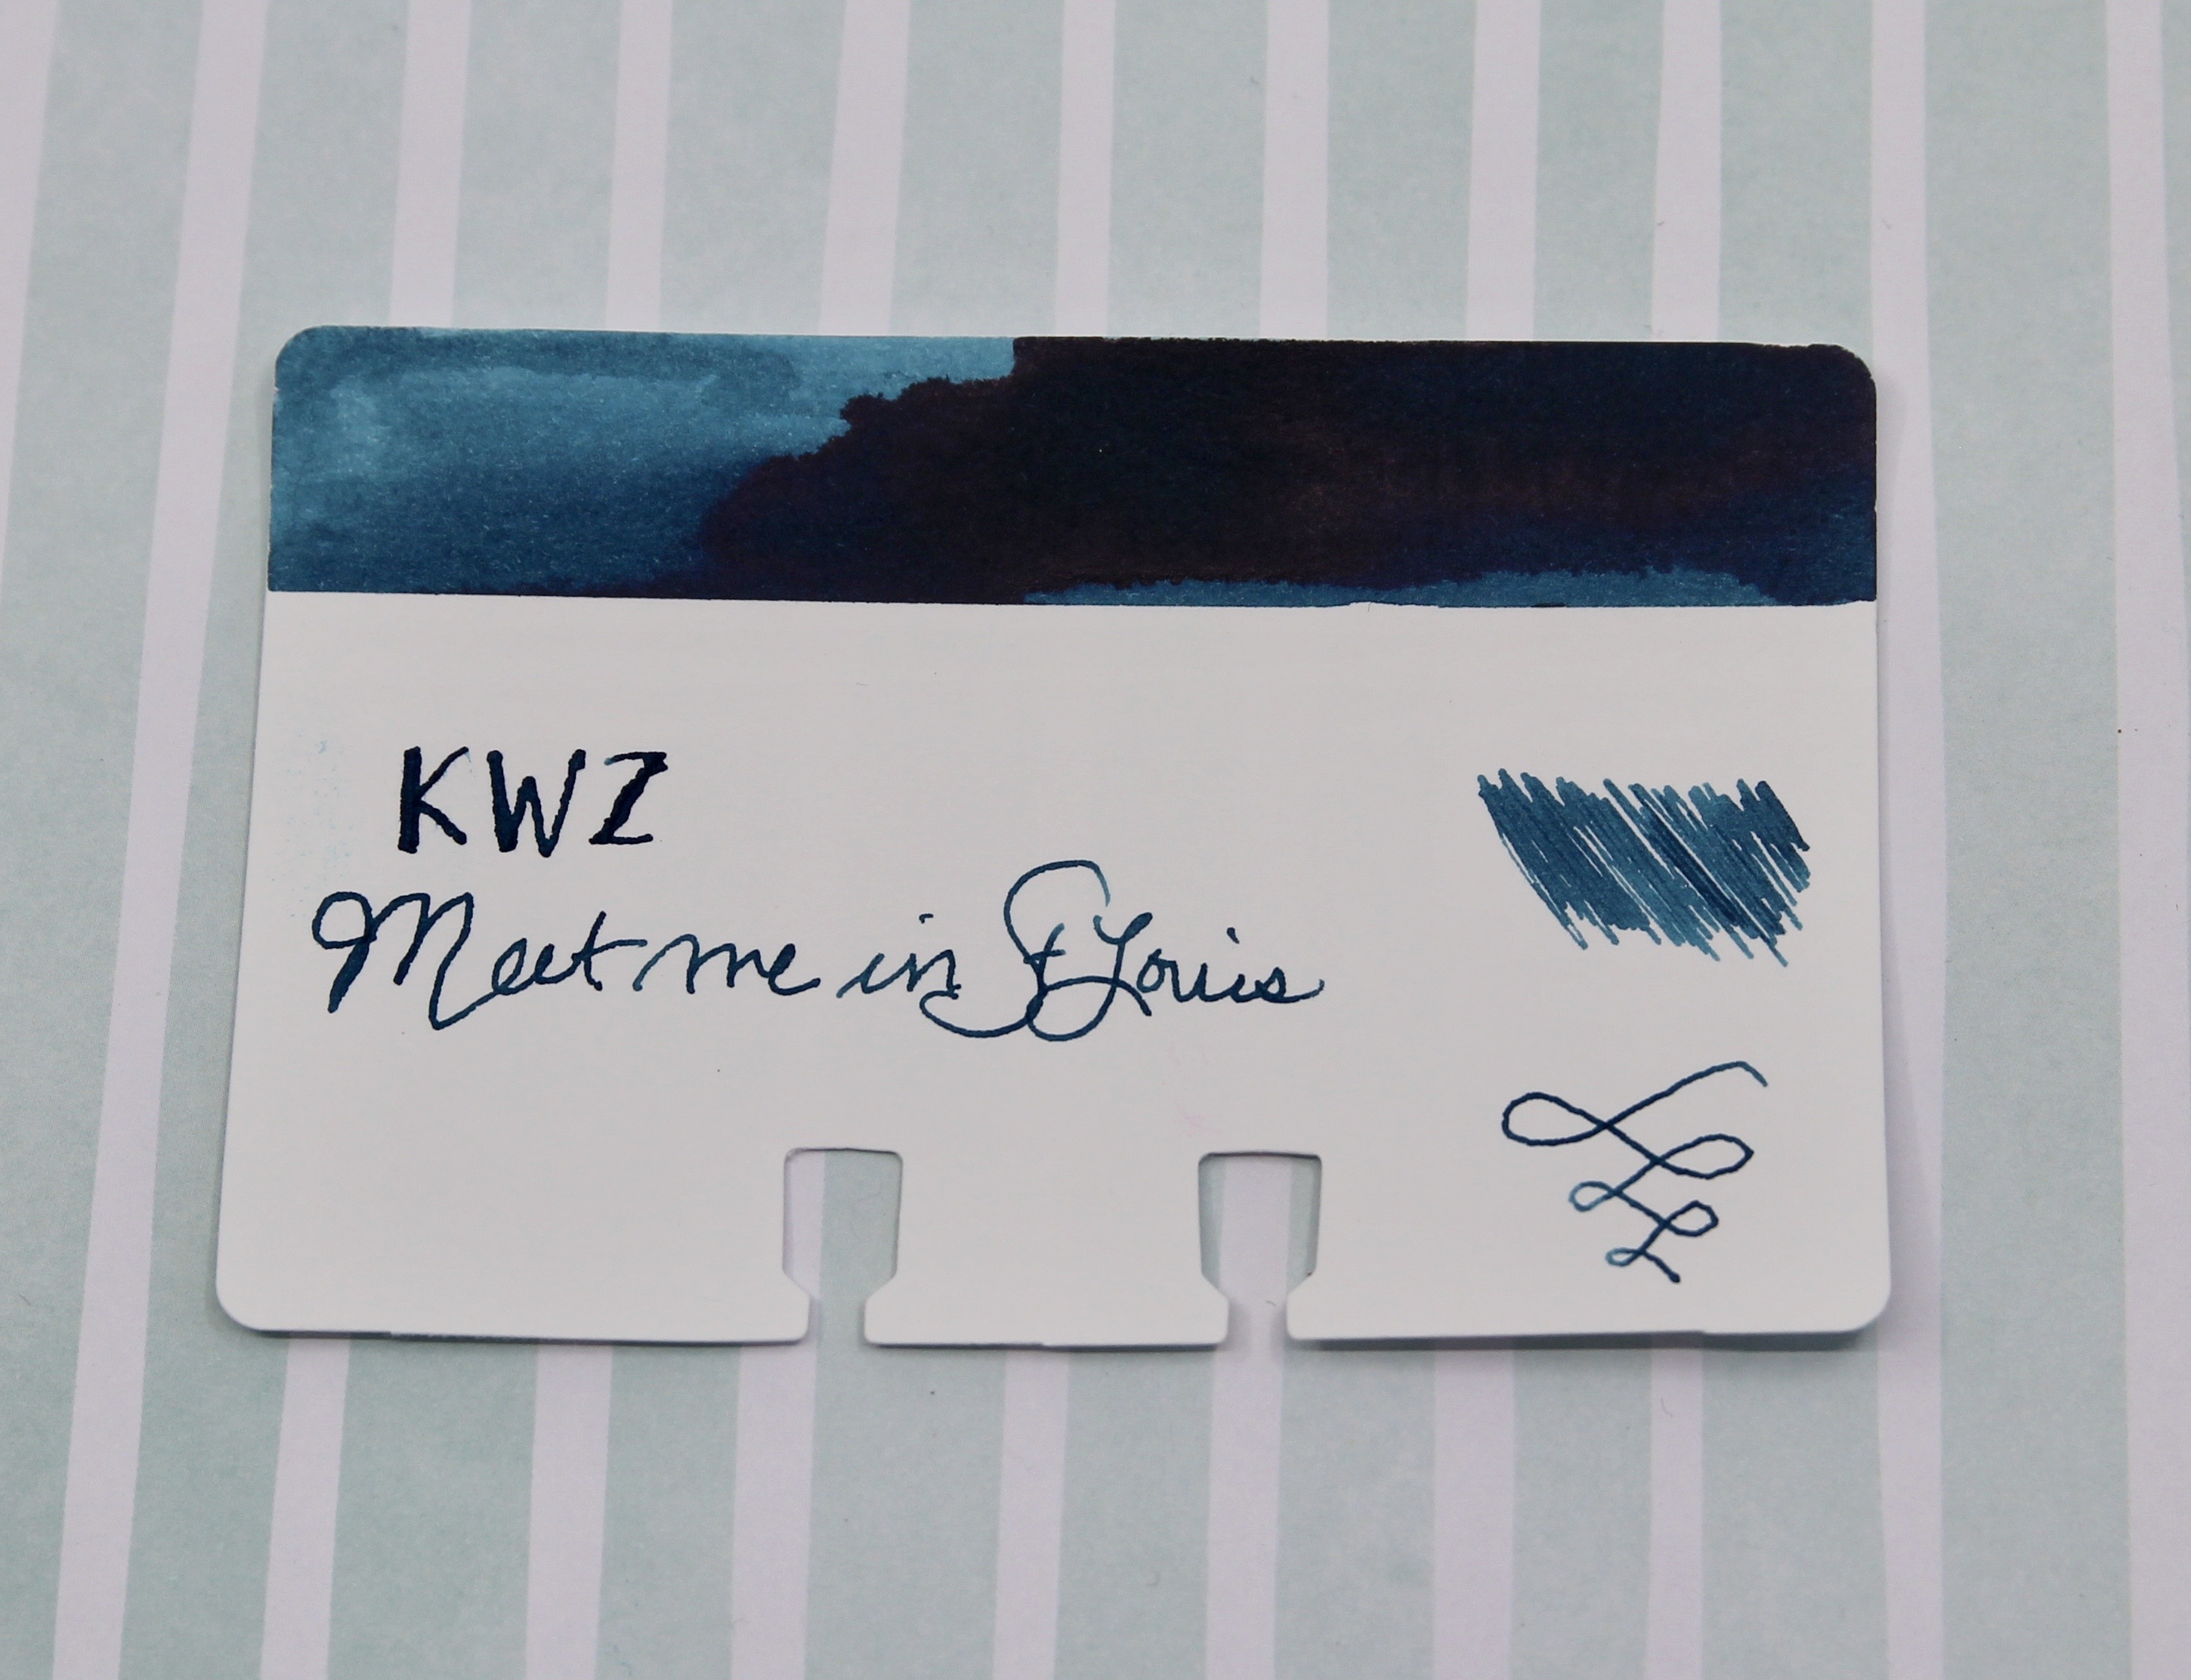 Ink Review: KWZ Meet me in St  Louis - The Well-Appointed Desk